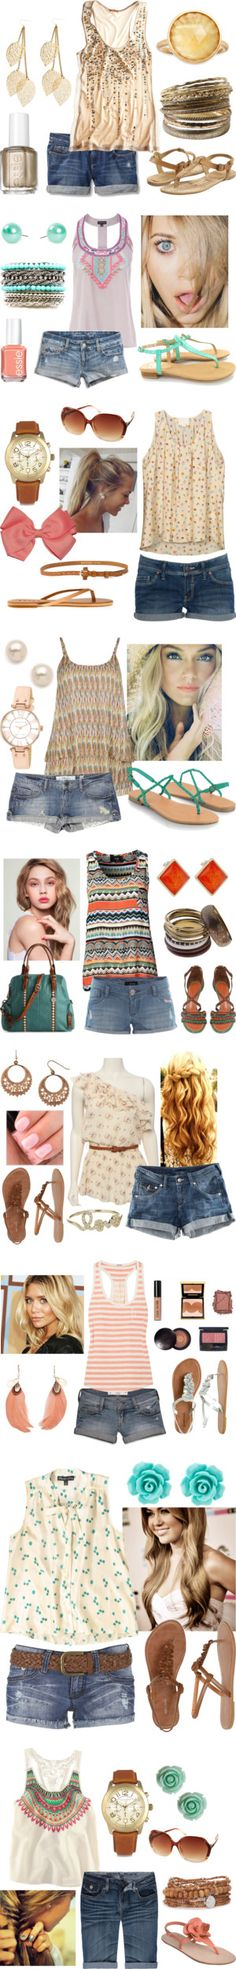 """Sweet Summertime"" by qtpiekelso on Polyvore. Hopefully we get enough of a summer this year that I can use some of these!"